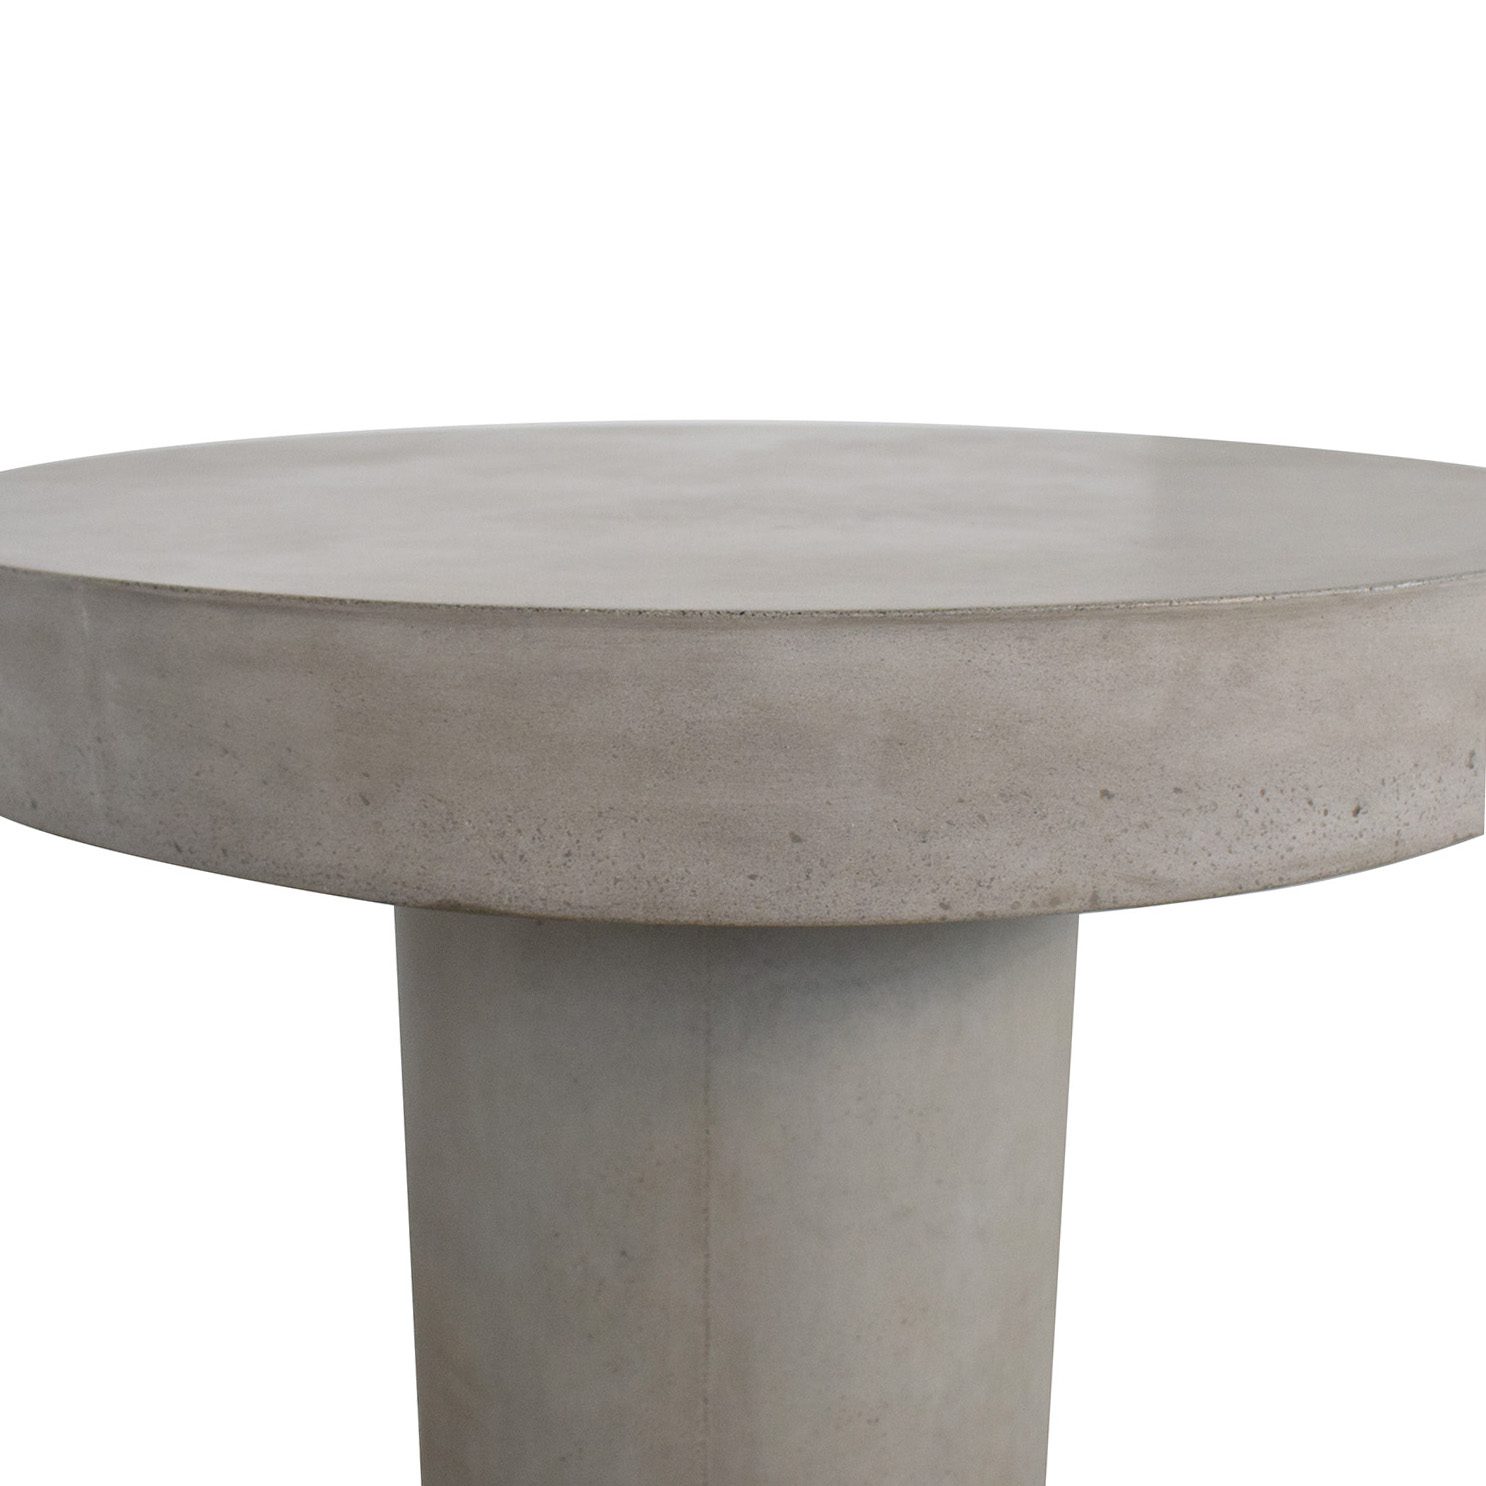 CB2 CB2 Fuze Concrete Bistro Table coupon